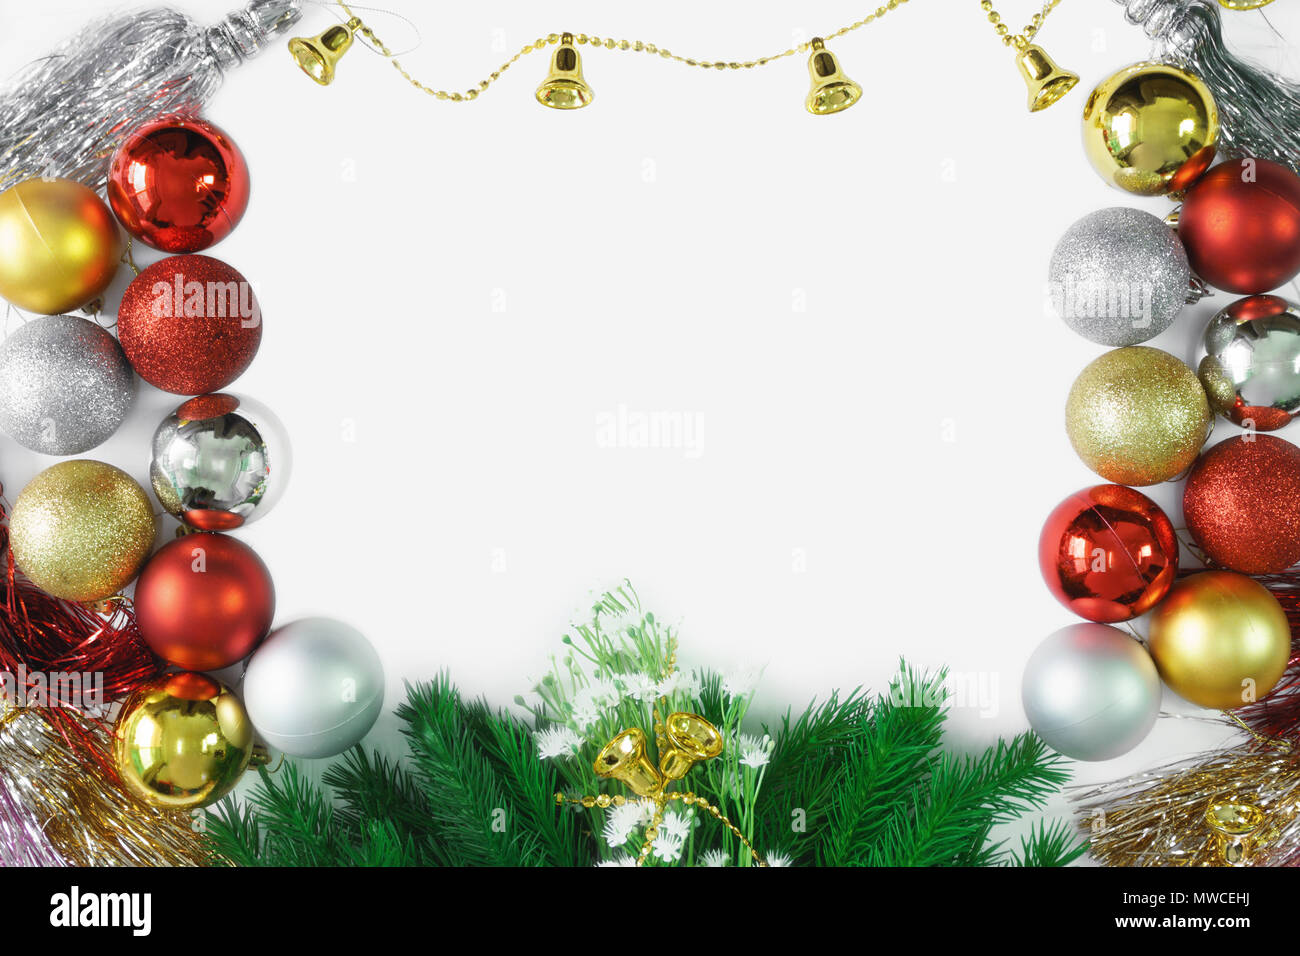 Christmas Ornaments Background.Christmas Ornaments Background Copy Space Merry Christmas